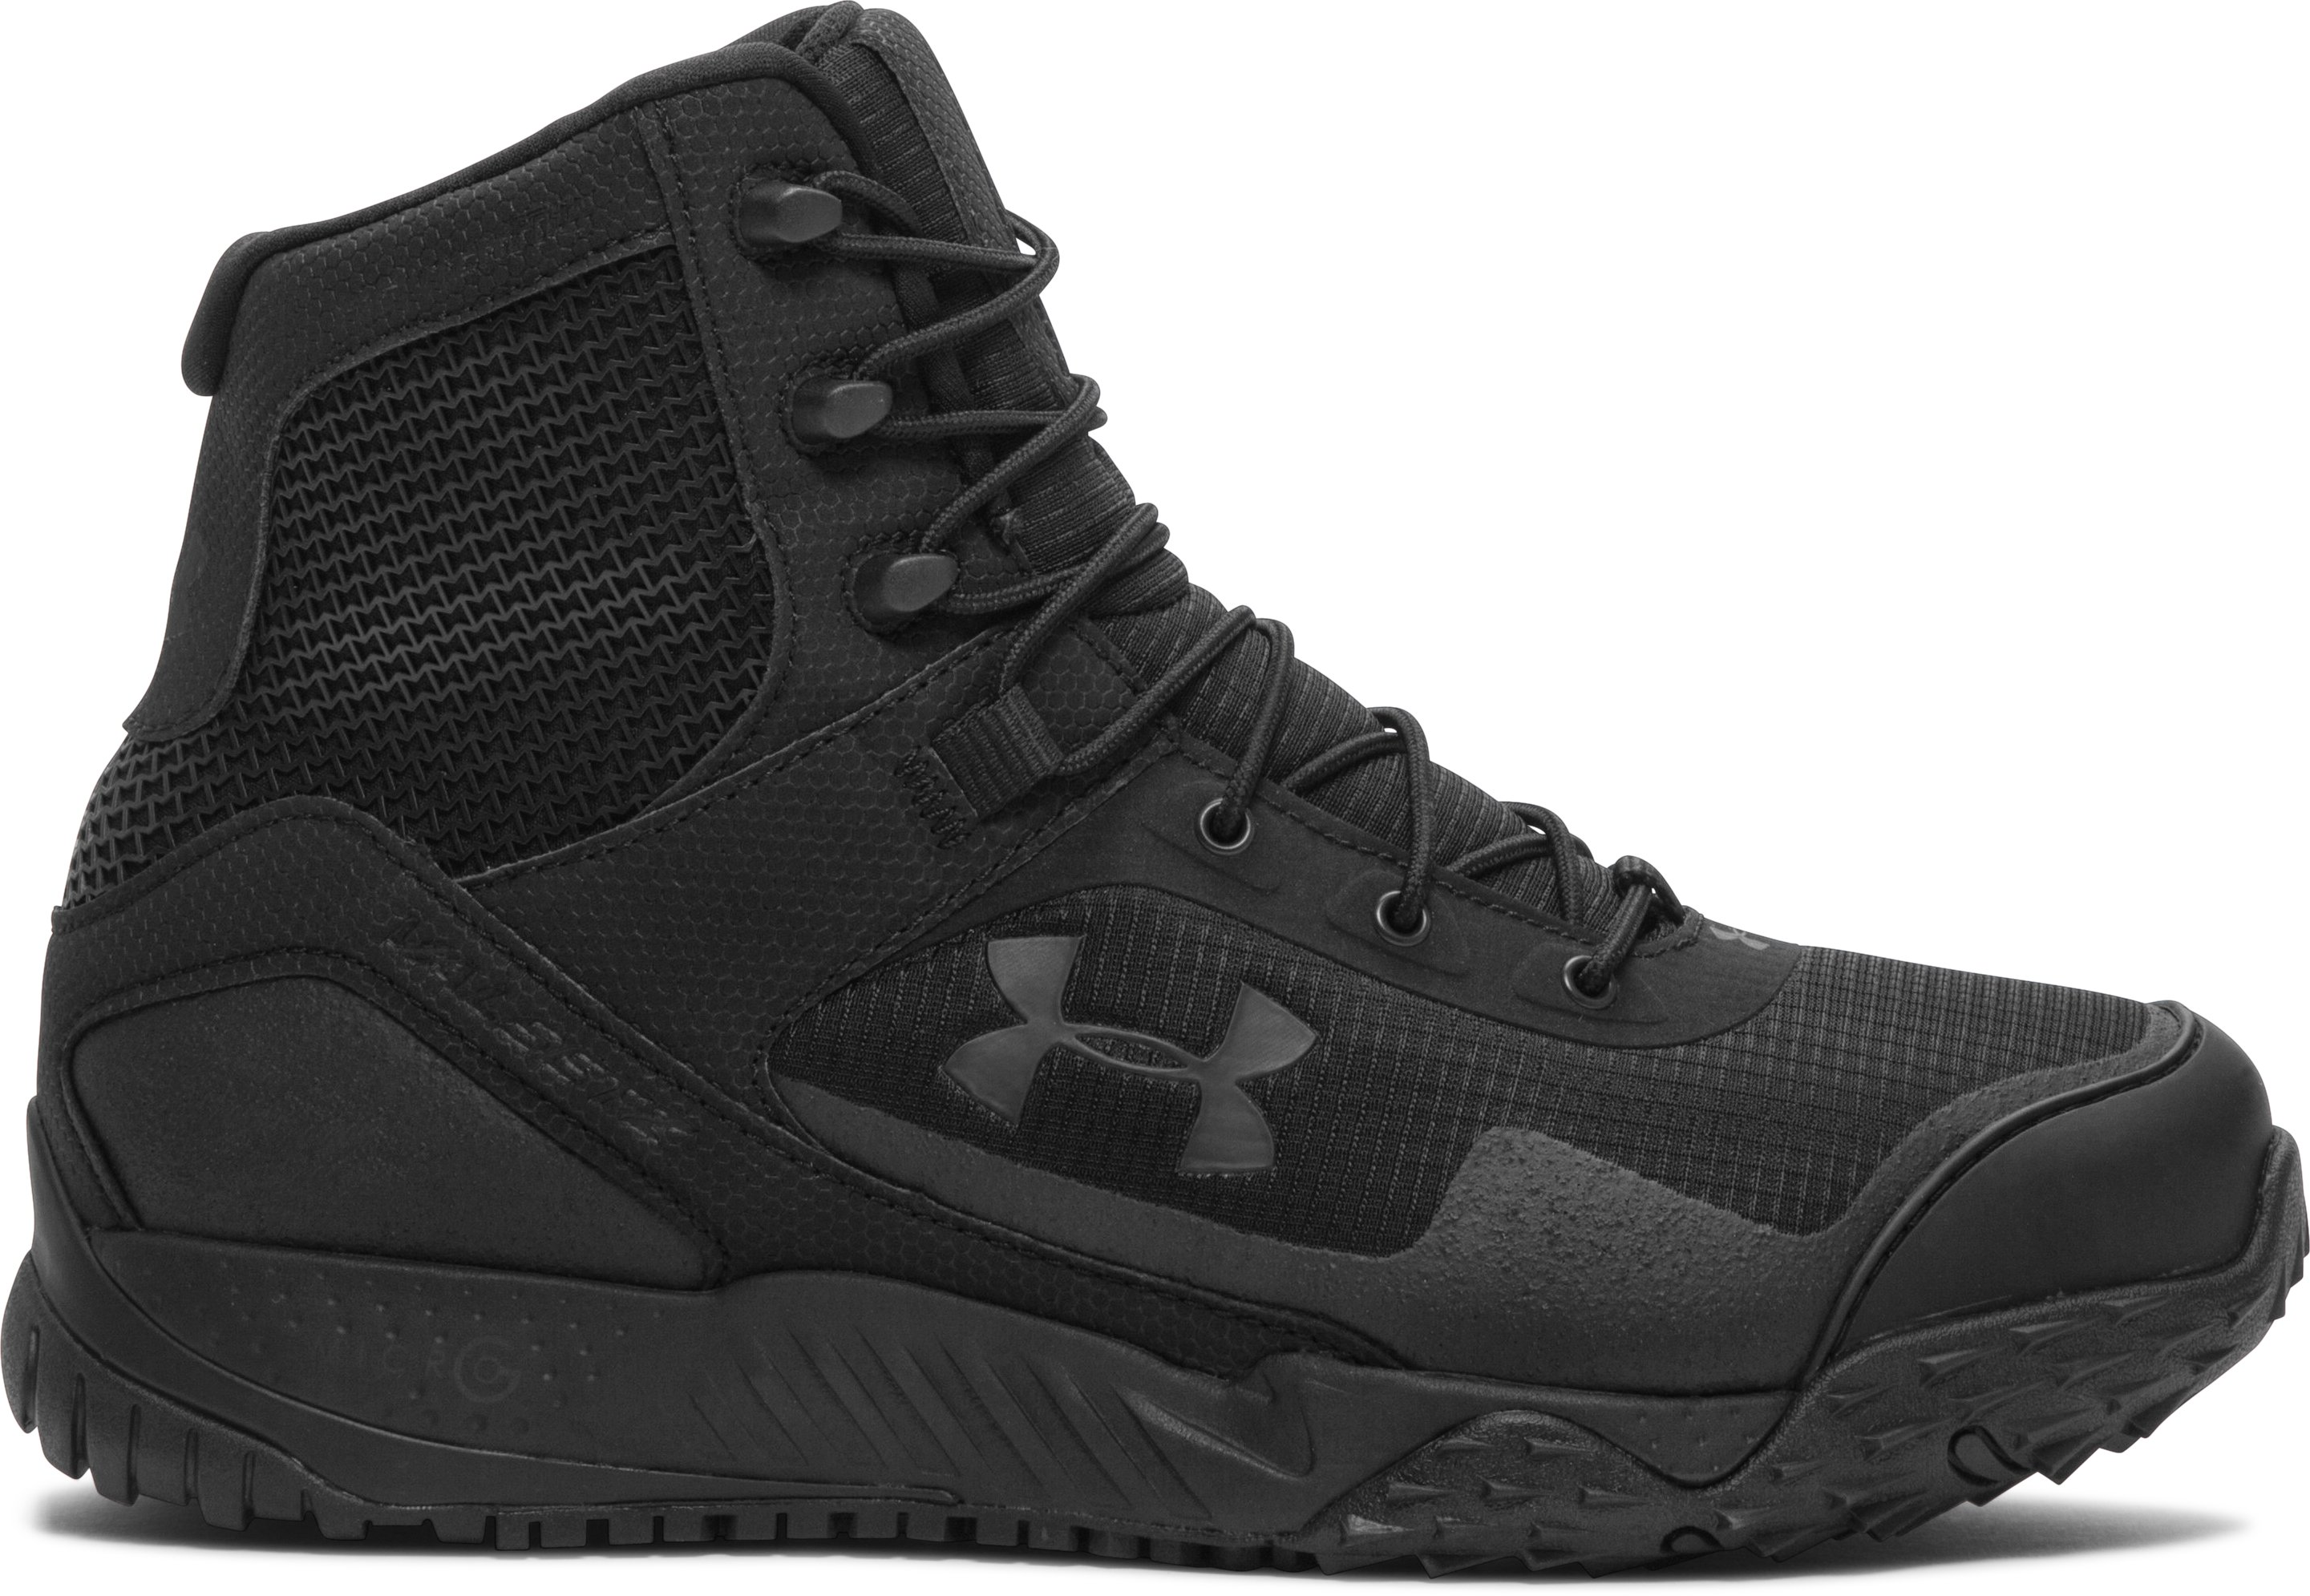 Mens Ua Valsetz RTS Side Zip Low Rise Hiking Shoes Under Armour